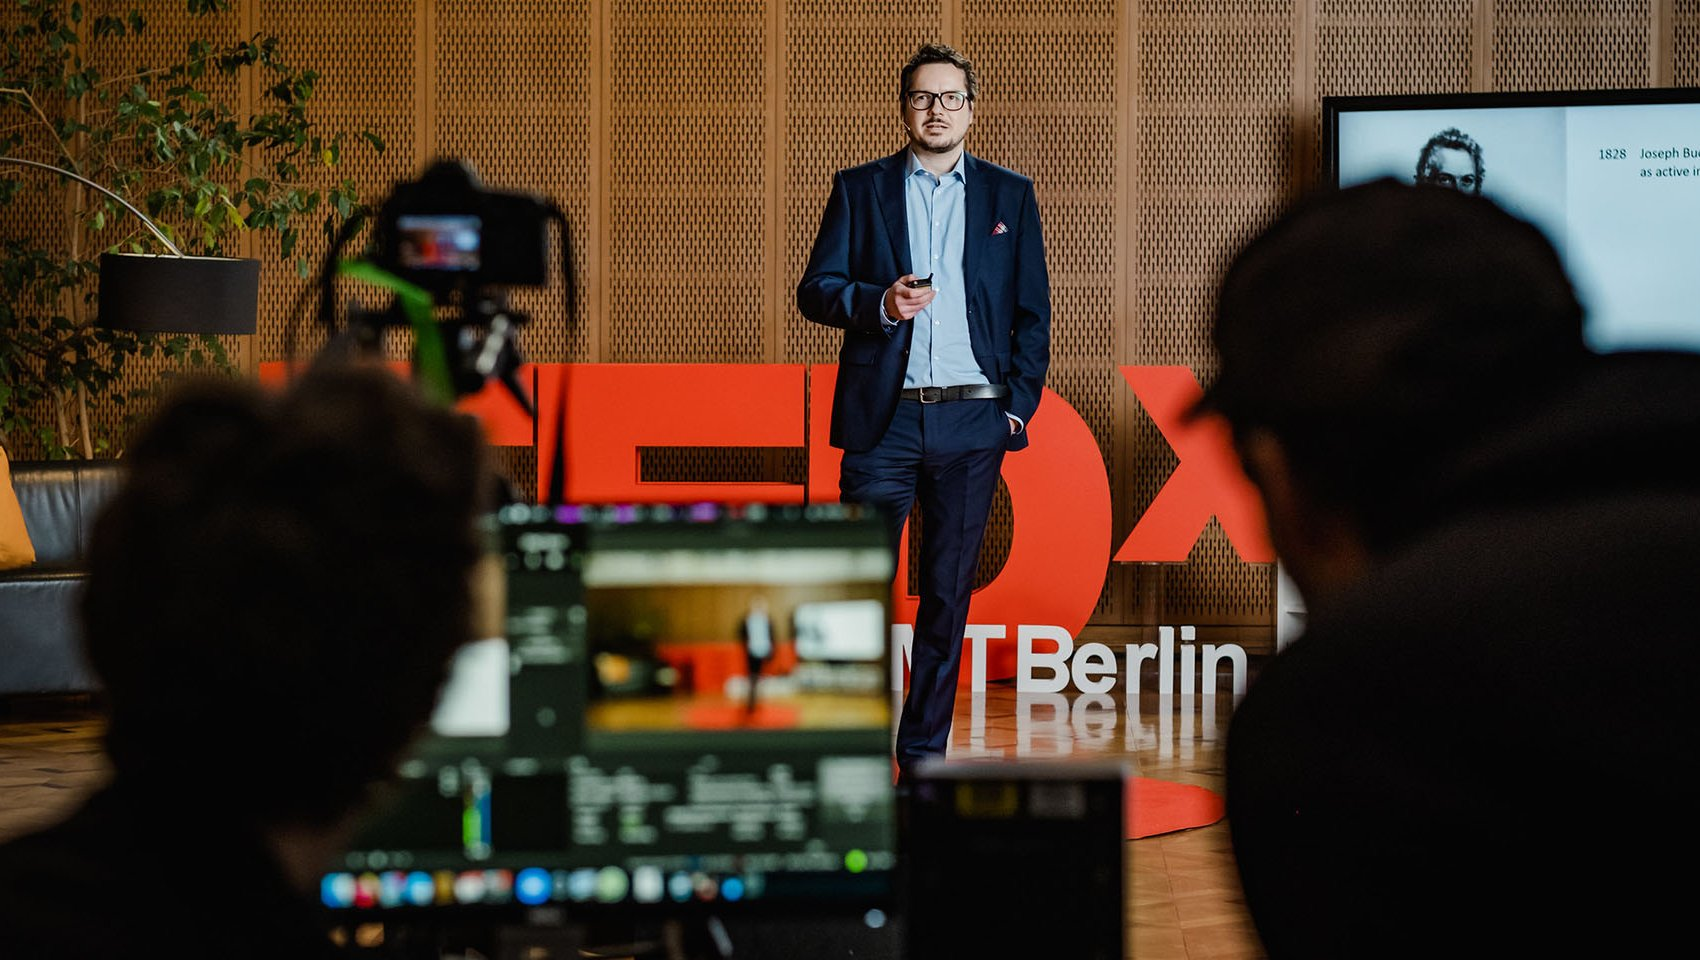 Stefan Wagner speaking at TEDx event at ESMT with blurred view of camera and camera man in front of the stage